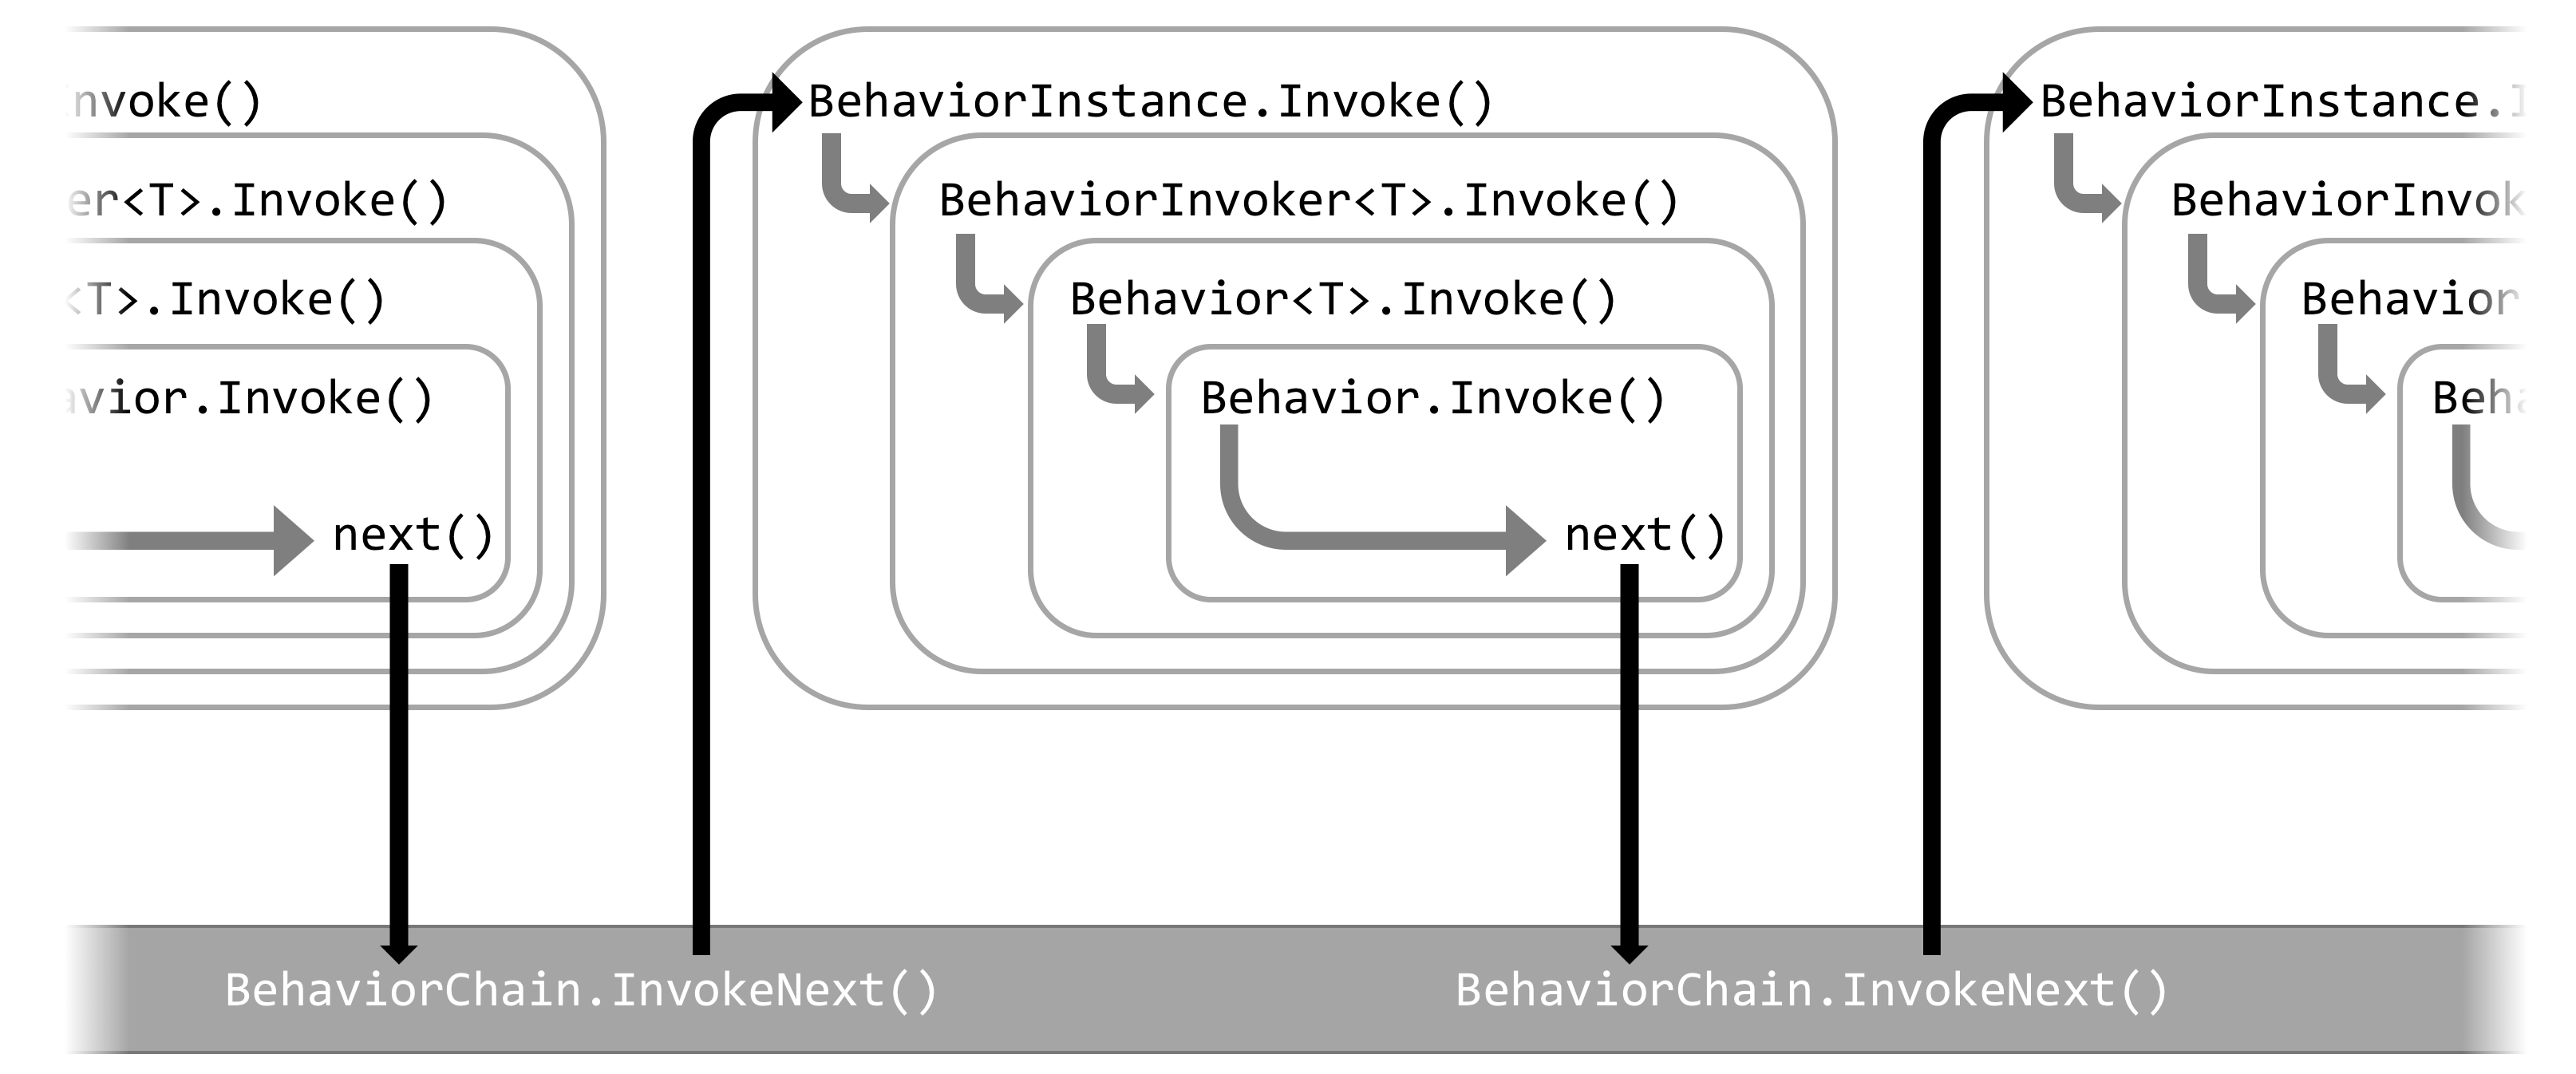 Behavior execution